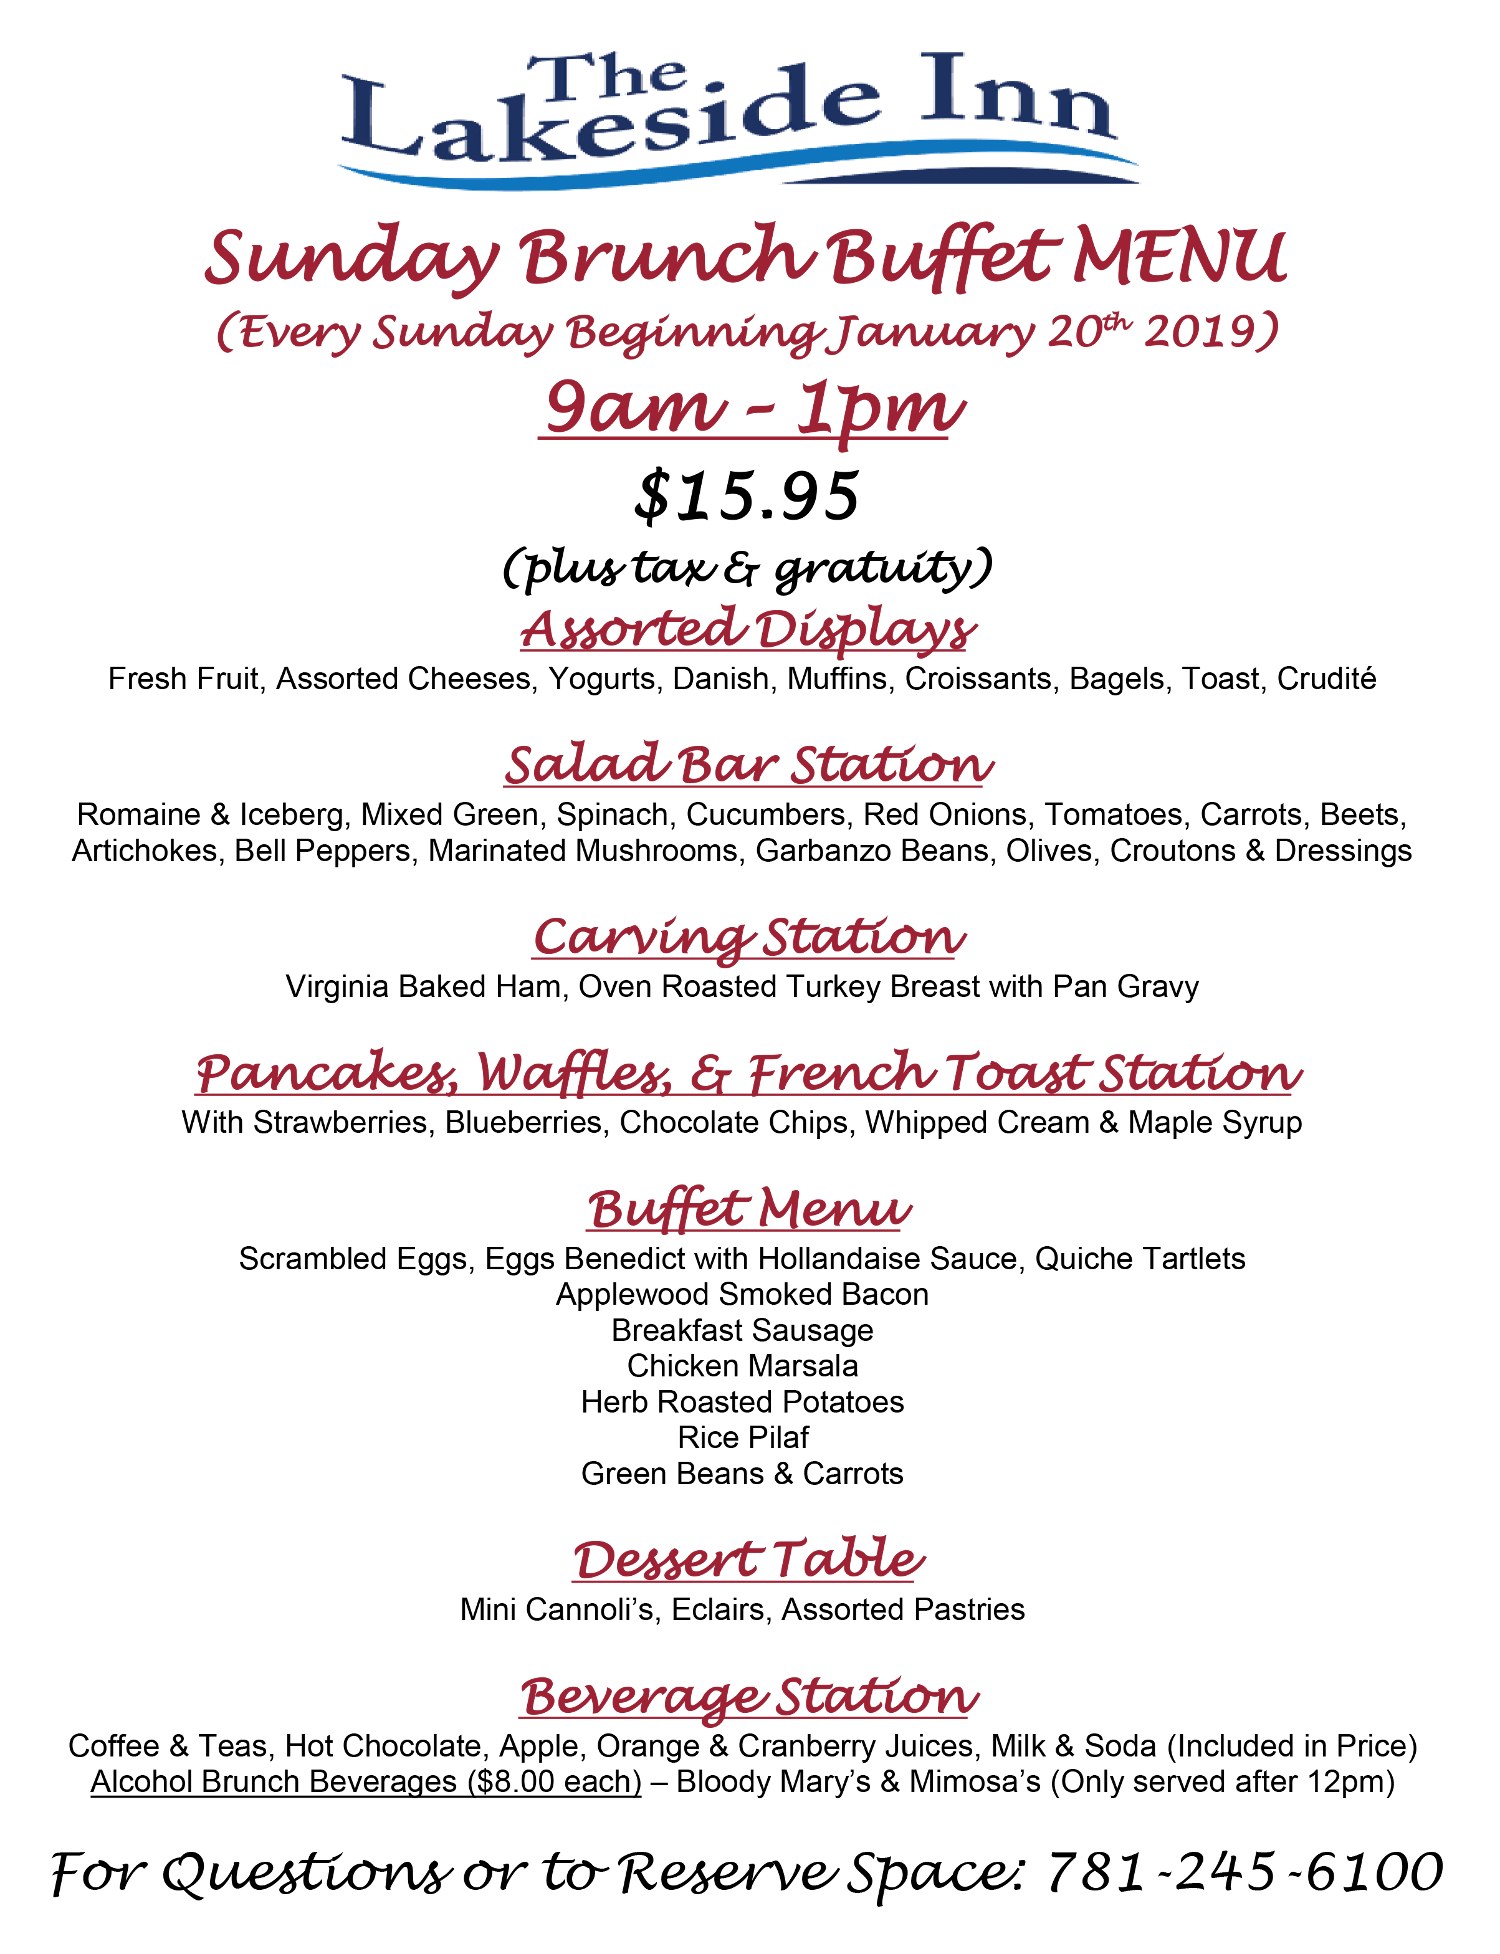 Sunday Brunch Buffet Menu